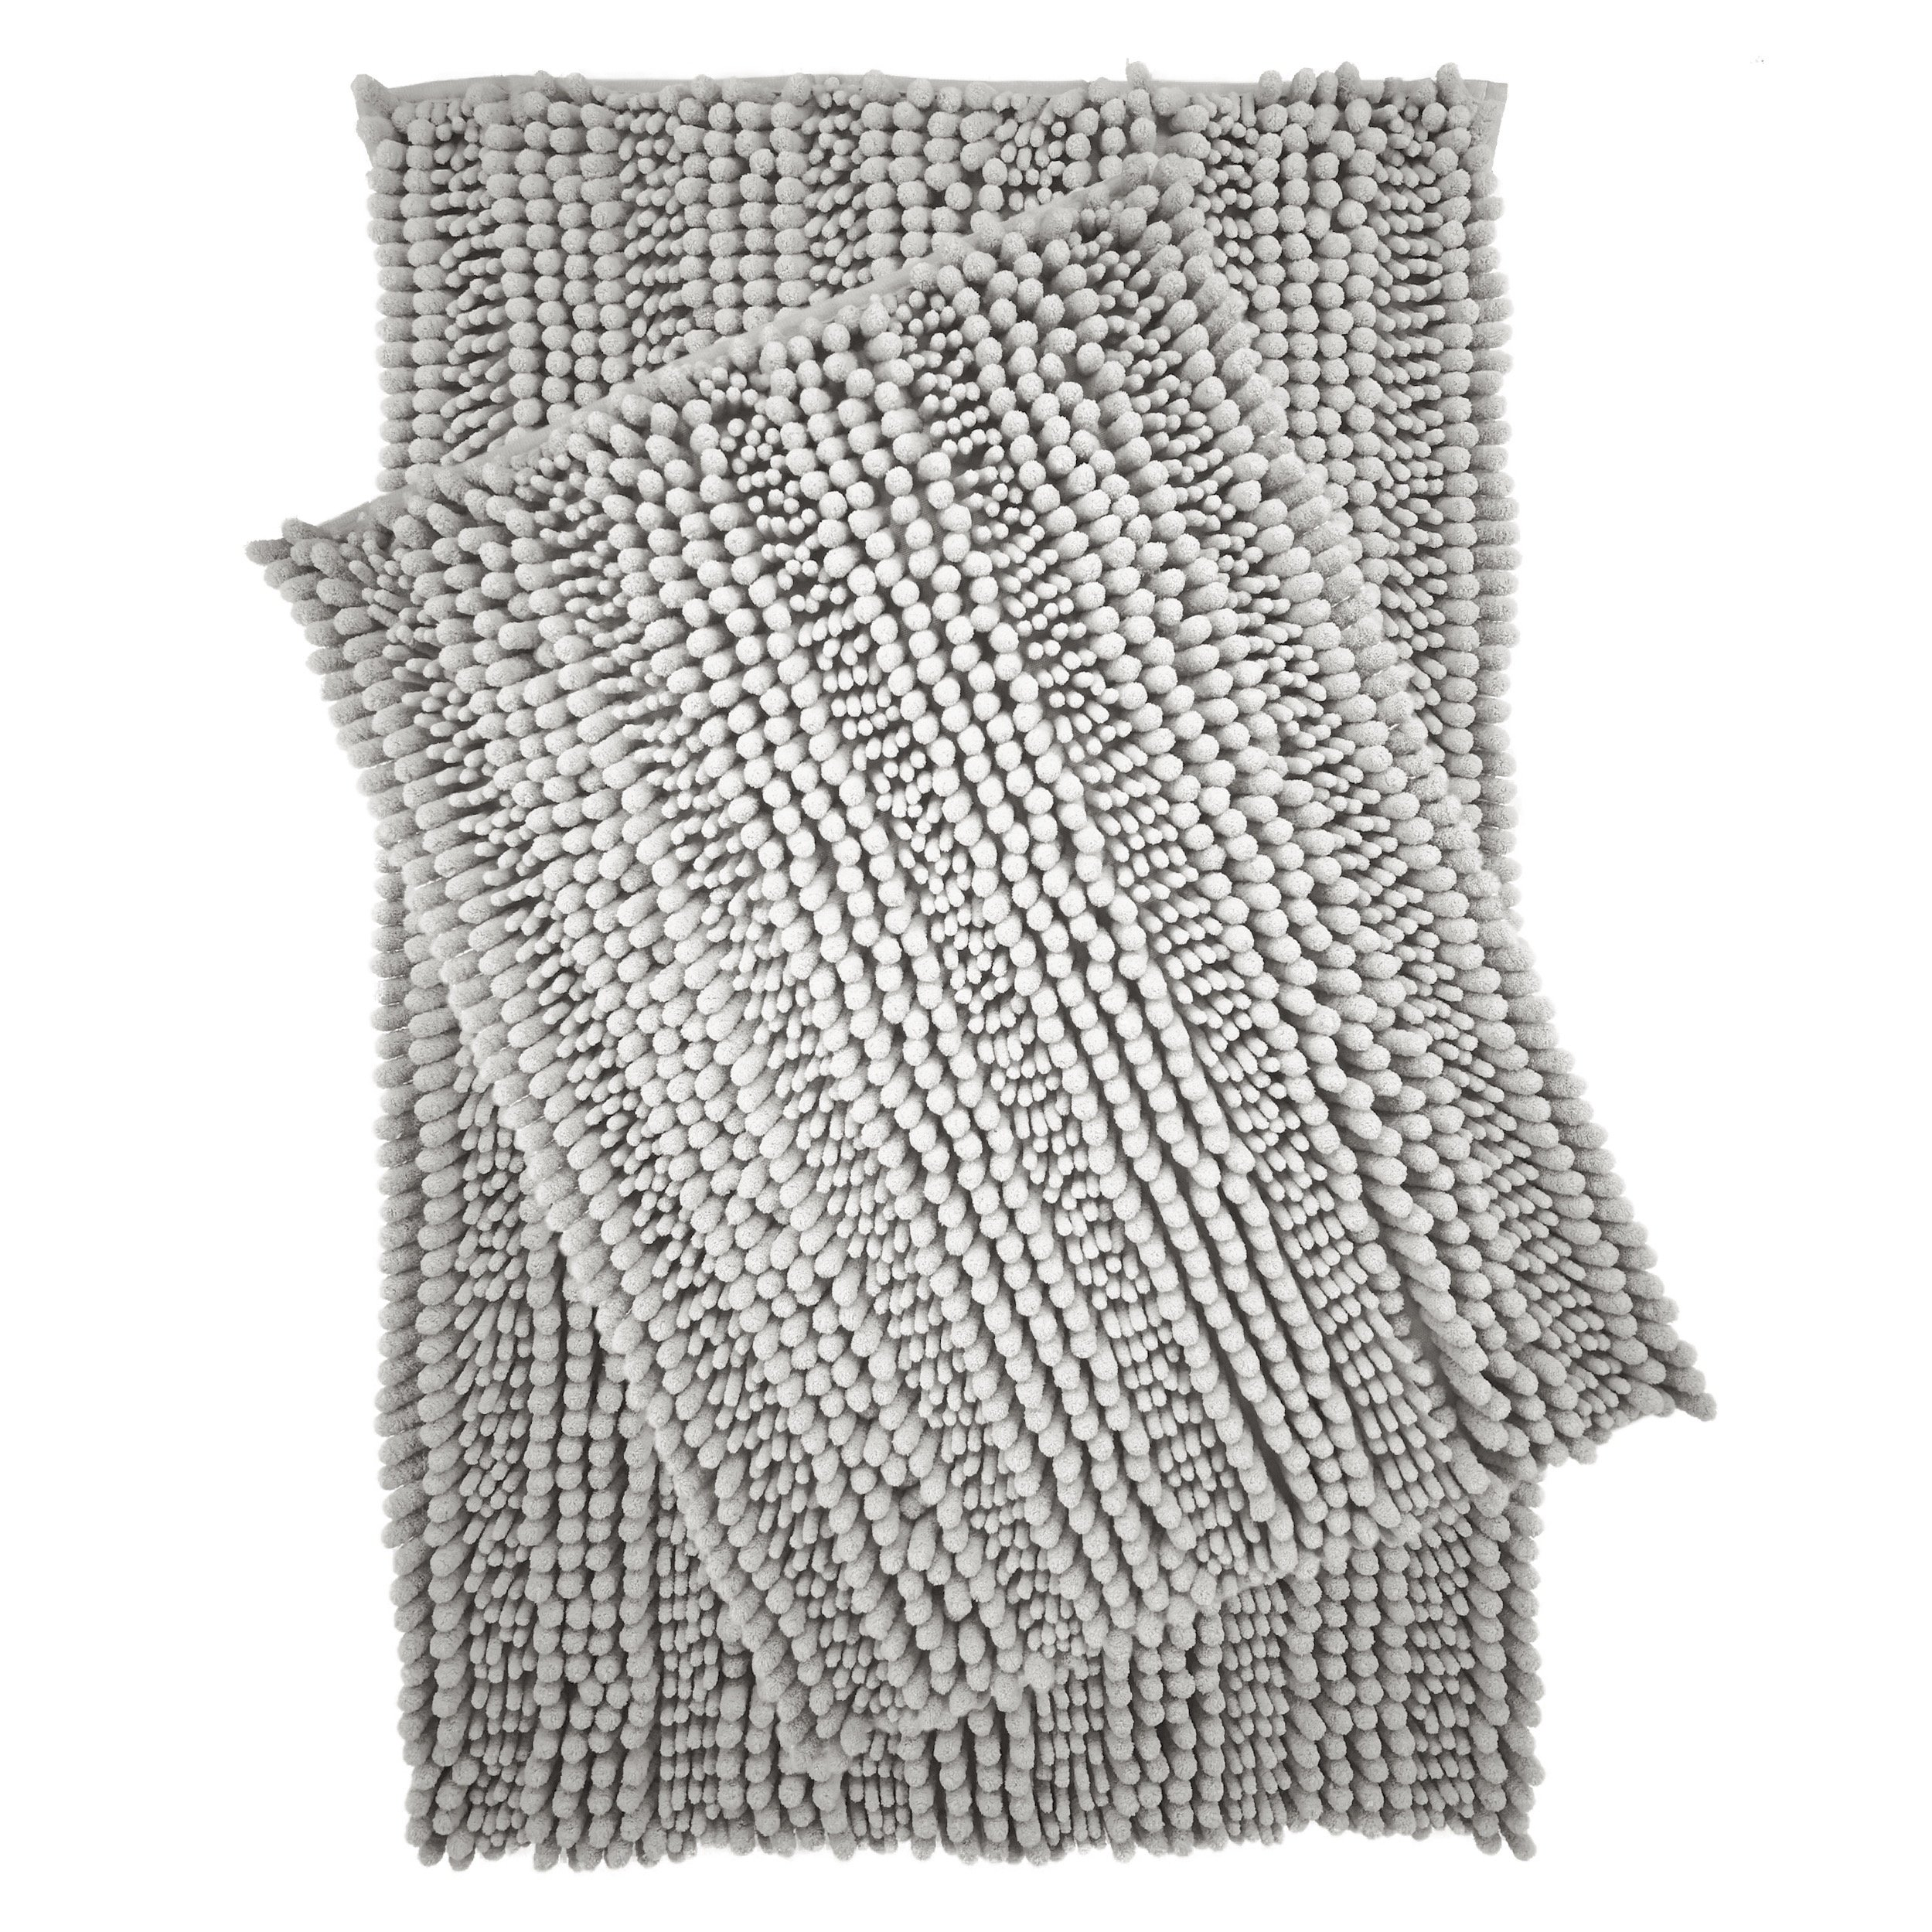 Polyte Premium Microfiber Shaggy Chenille Bath Mat, 20 x 32 in / 17 x 24 in, Set of 2 (Gray) by Polyte